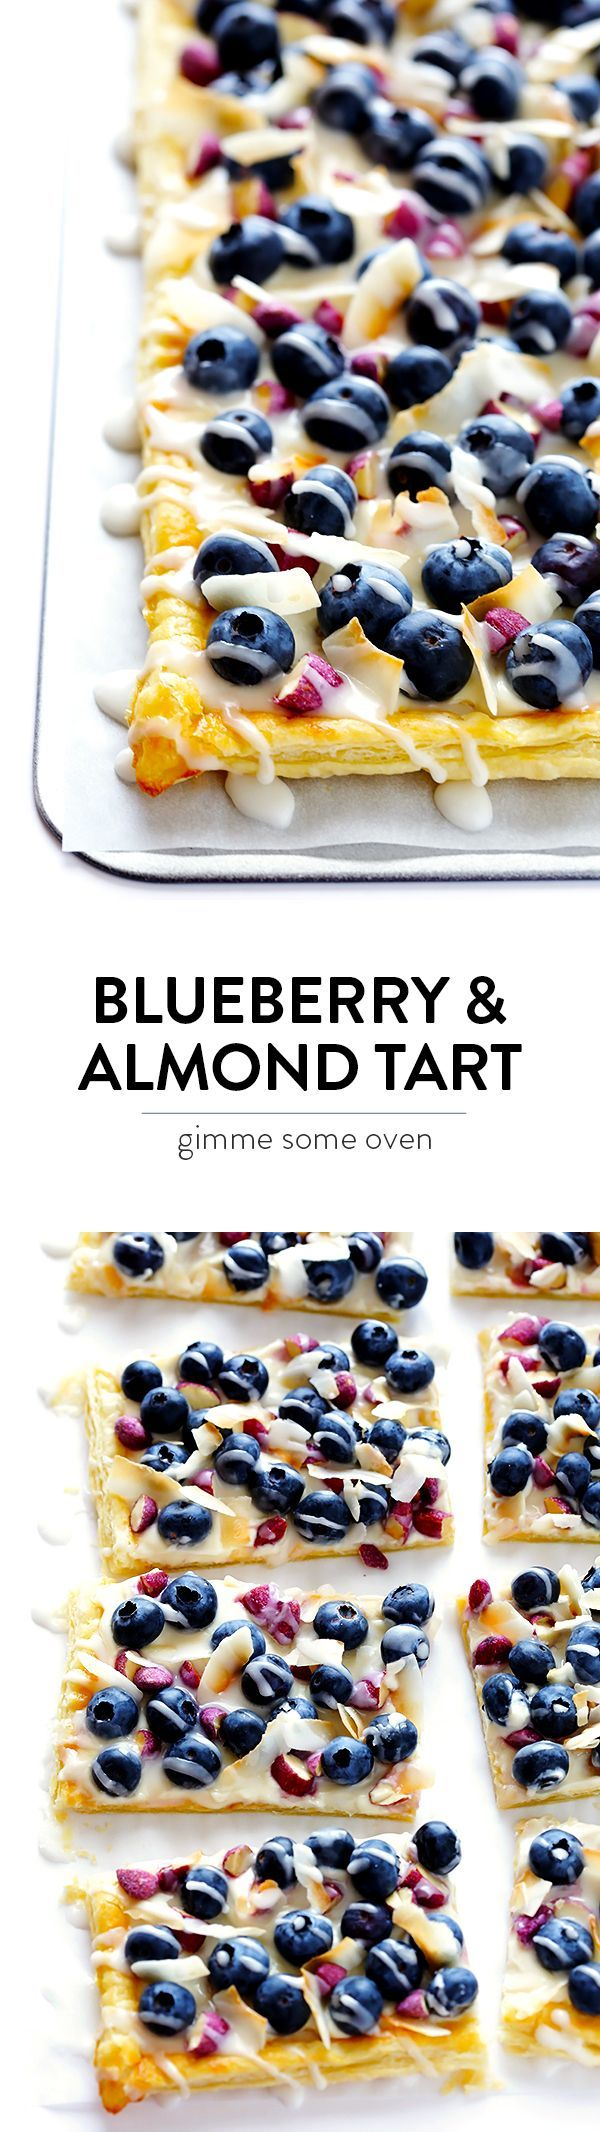 This Super-Easy Blueberry Almond Tart is surprisingly simple to make, easily to customize with your favorite fruits and toppings, and it's perfect for brunch or dessert anytime!